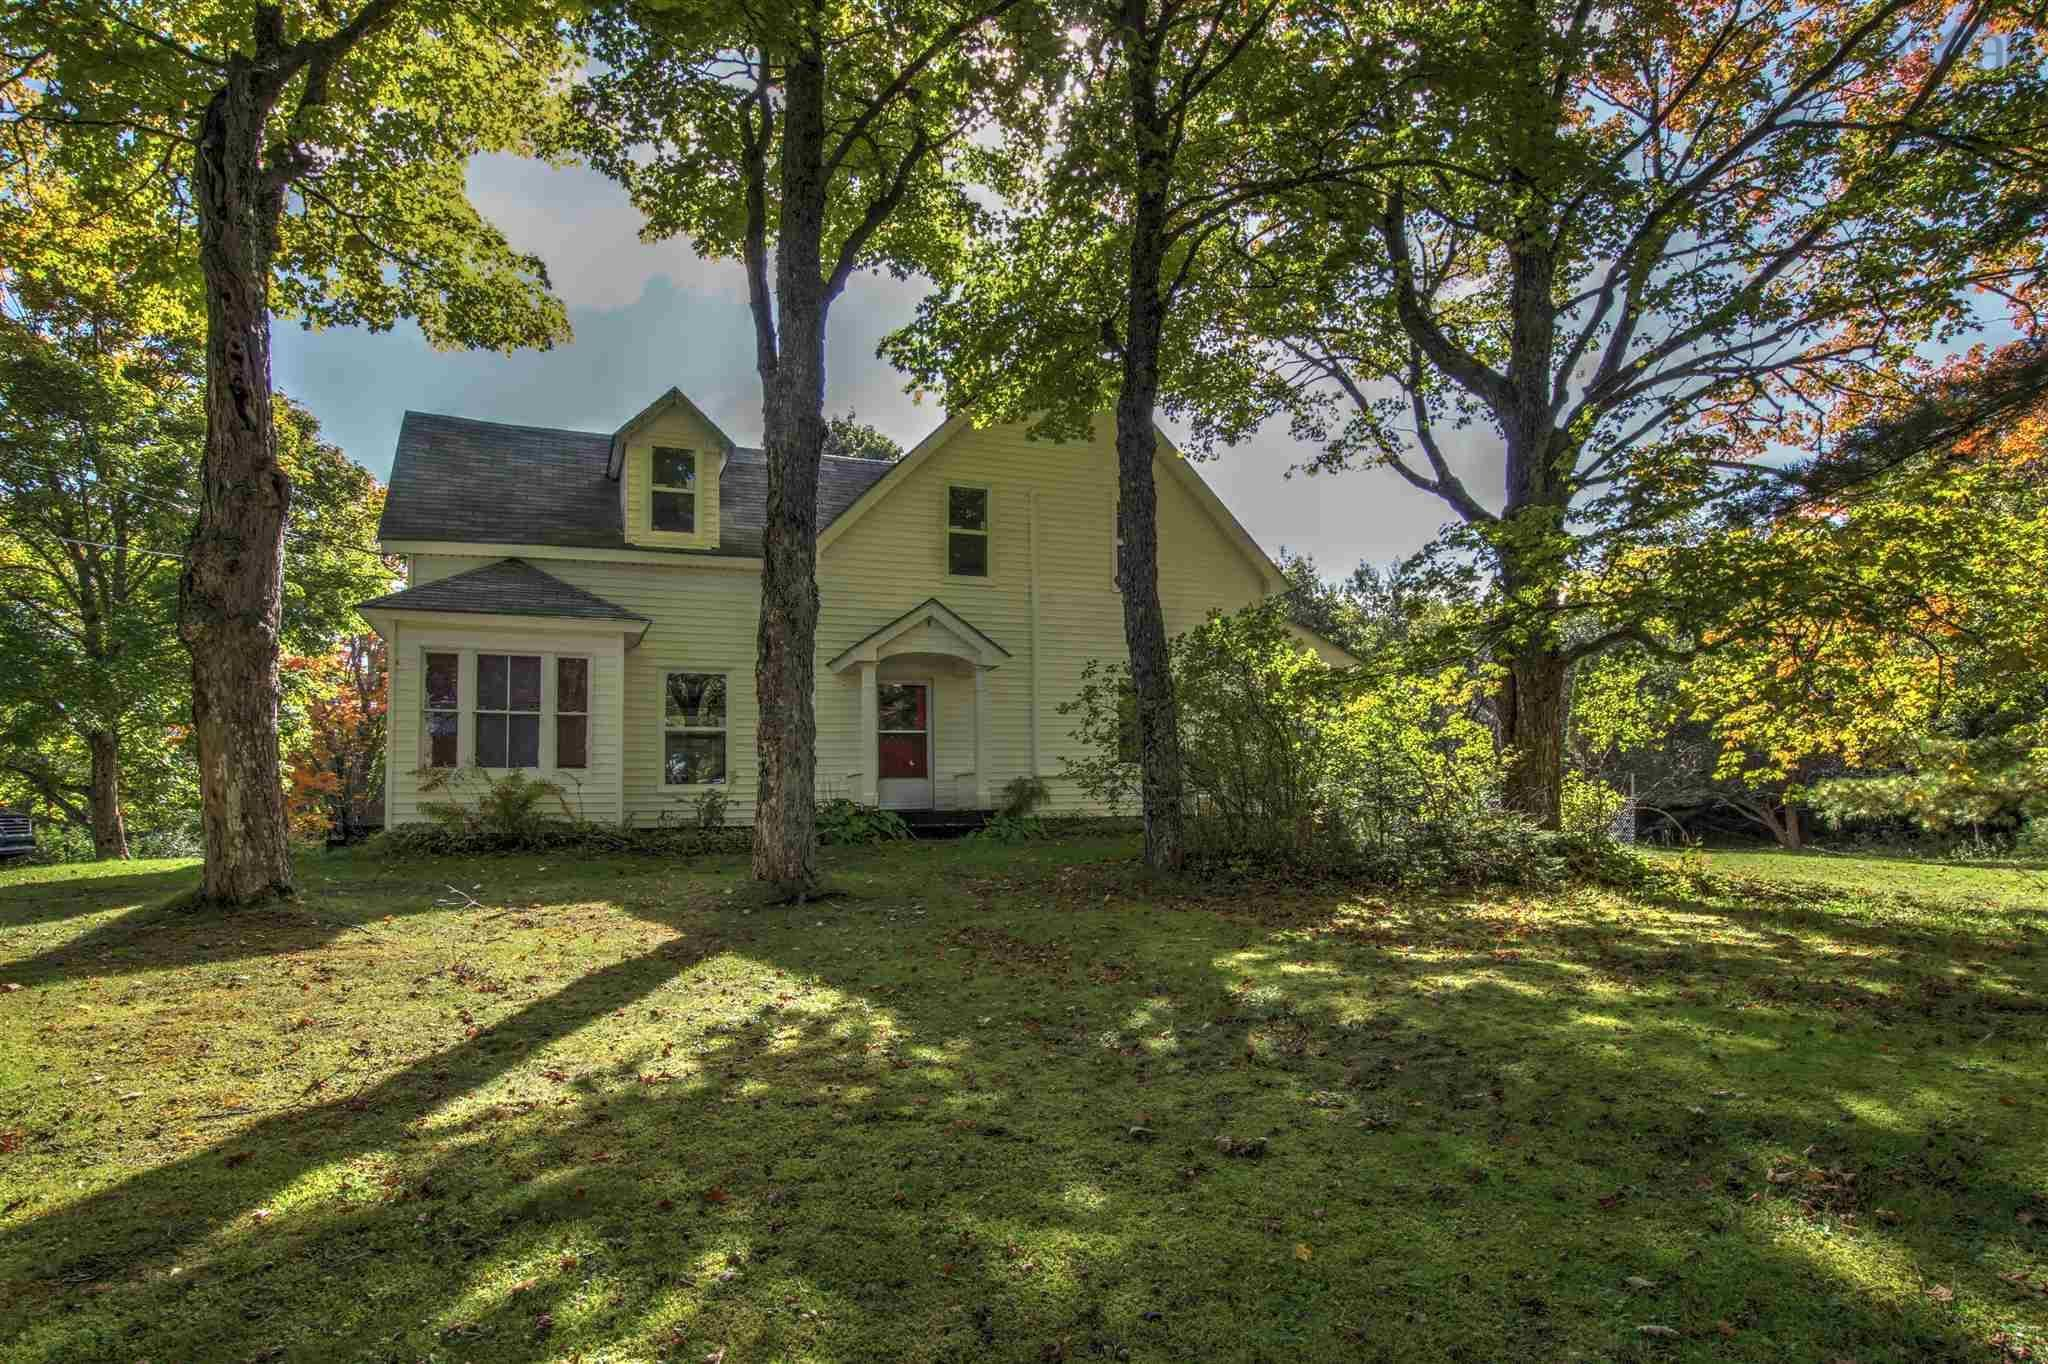 Main Photo: 6205 East River West Side Road in Eureka: 108-Rural Pictou County Residential for sale (Northern Region)  : MLS®# 202125868